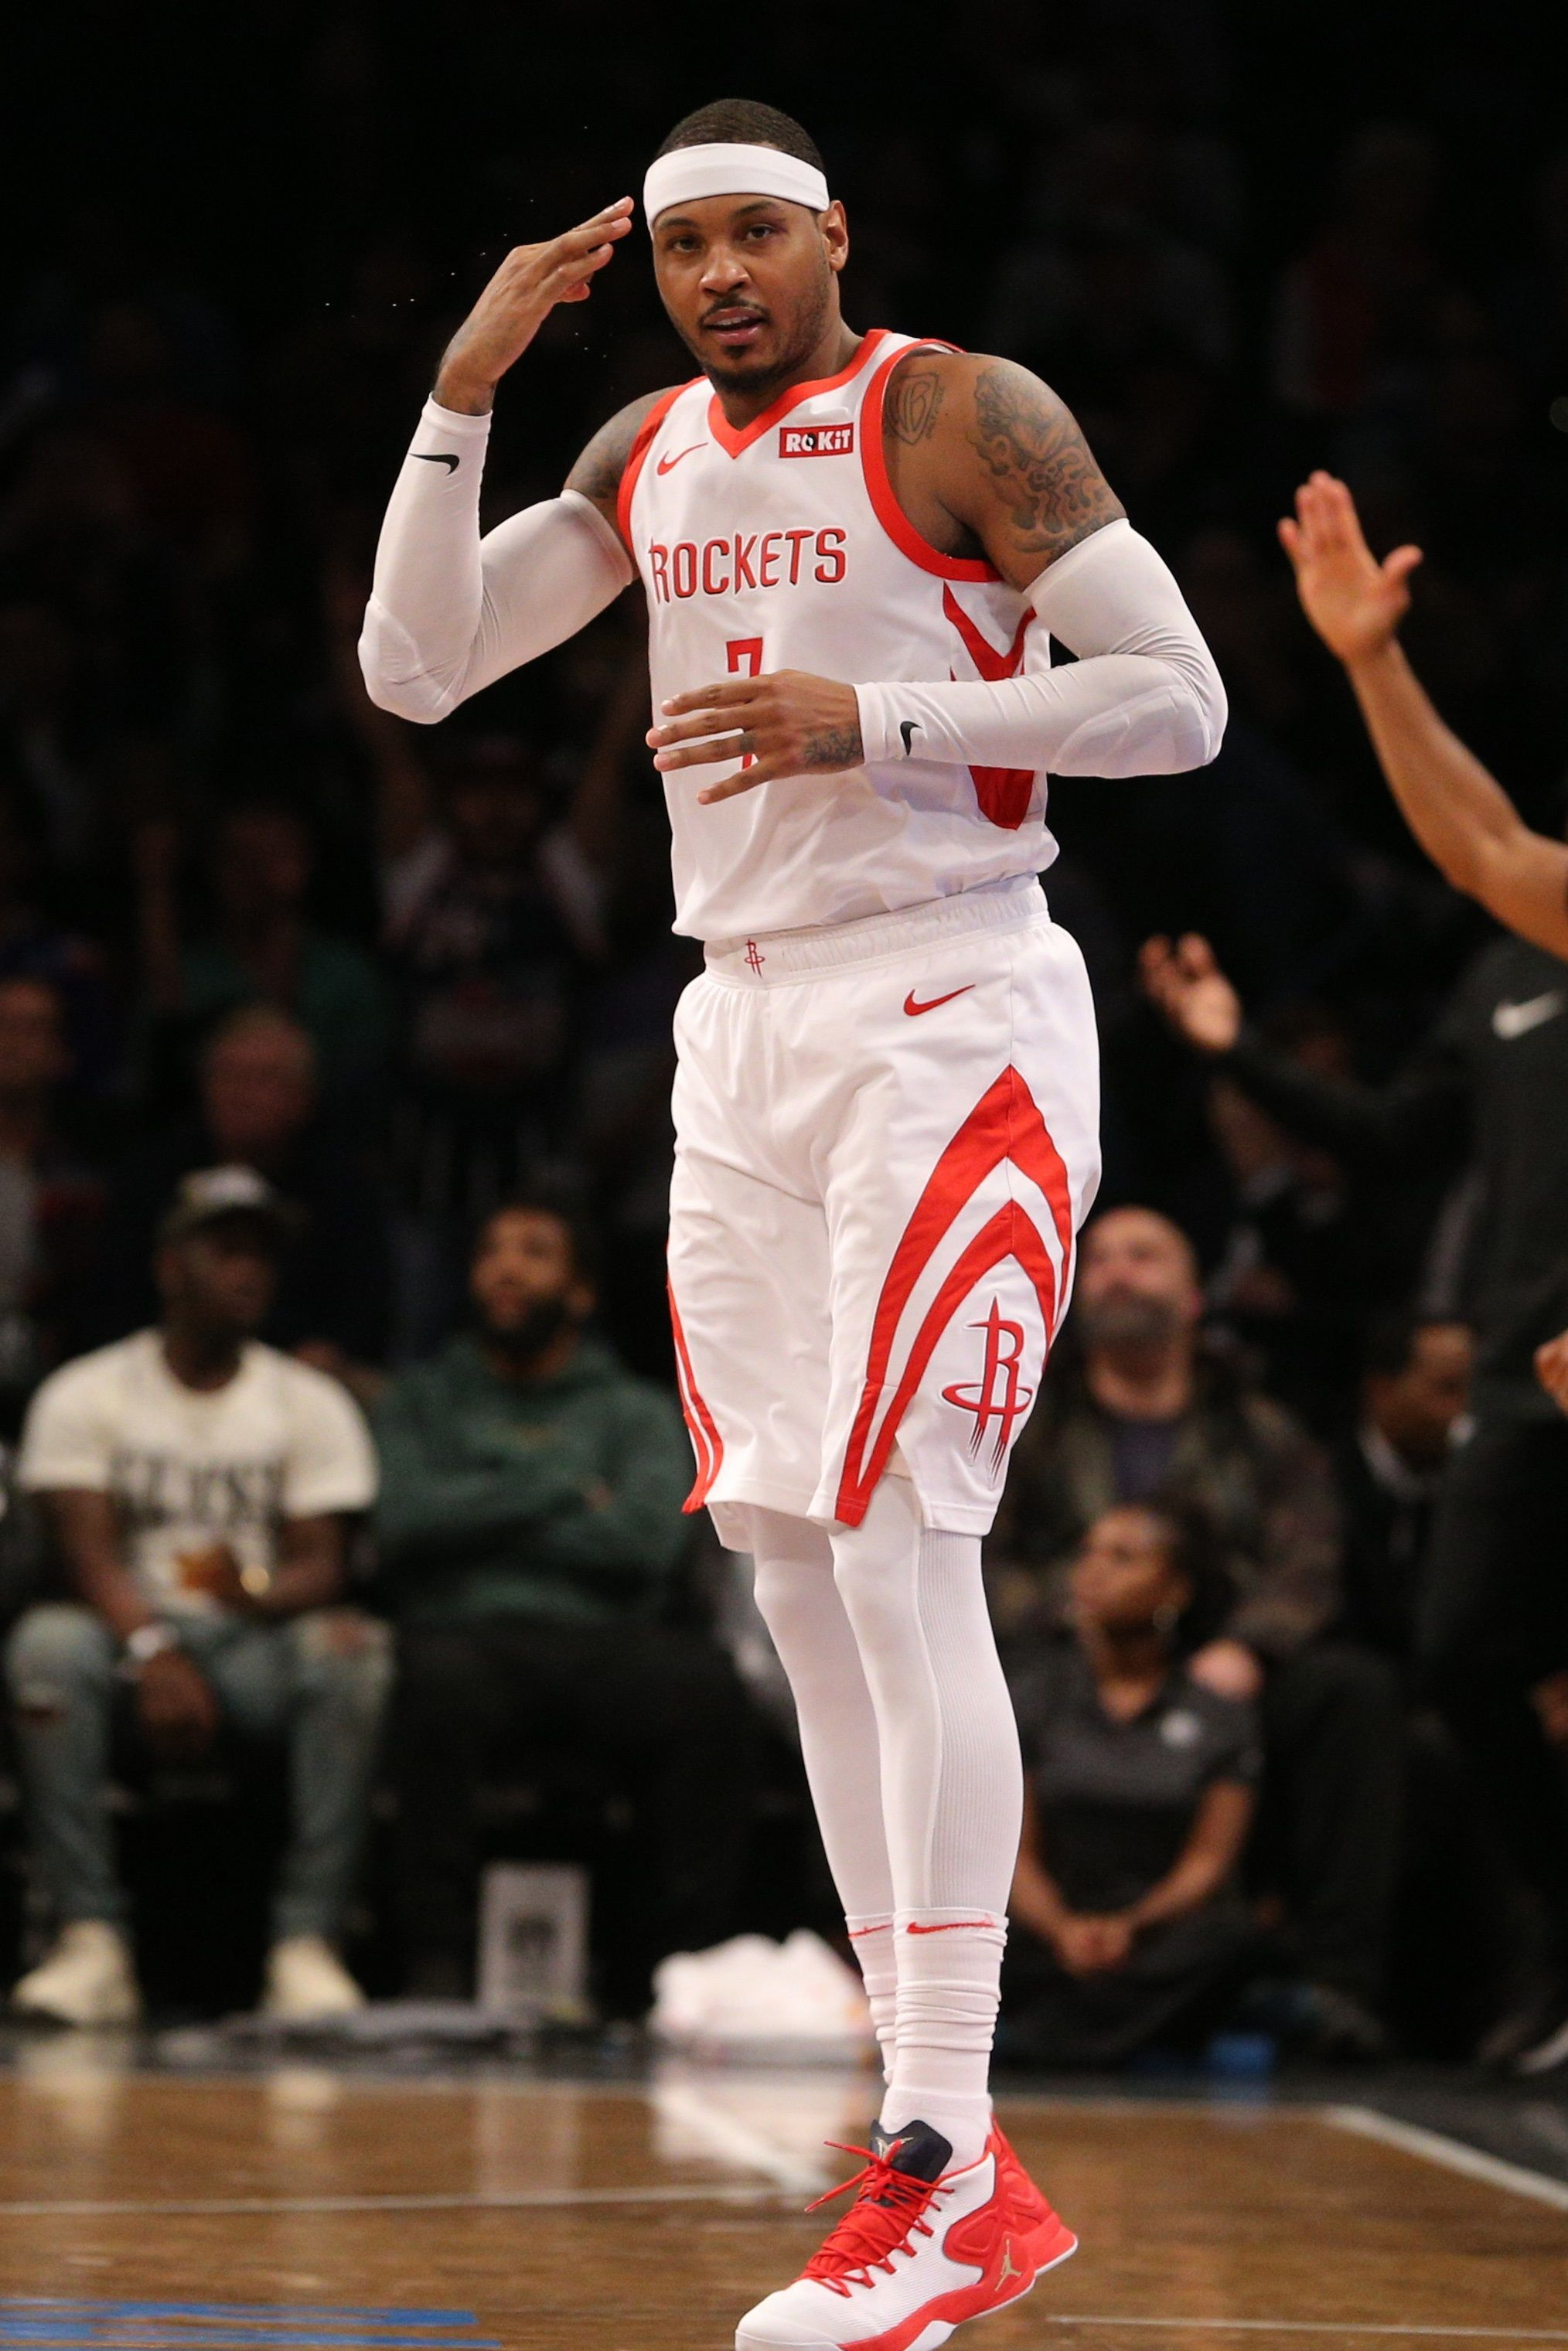 Carmelo Anthony Four Potential Landing Spots After Parting Ways With Rockets Carmelo Anthony Carmelo Anthony Wallpaper Basketball Players